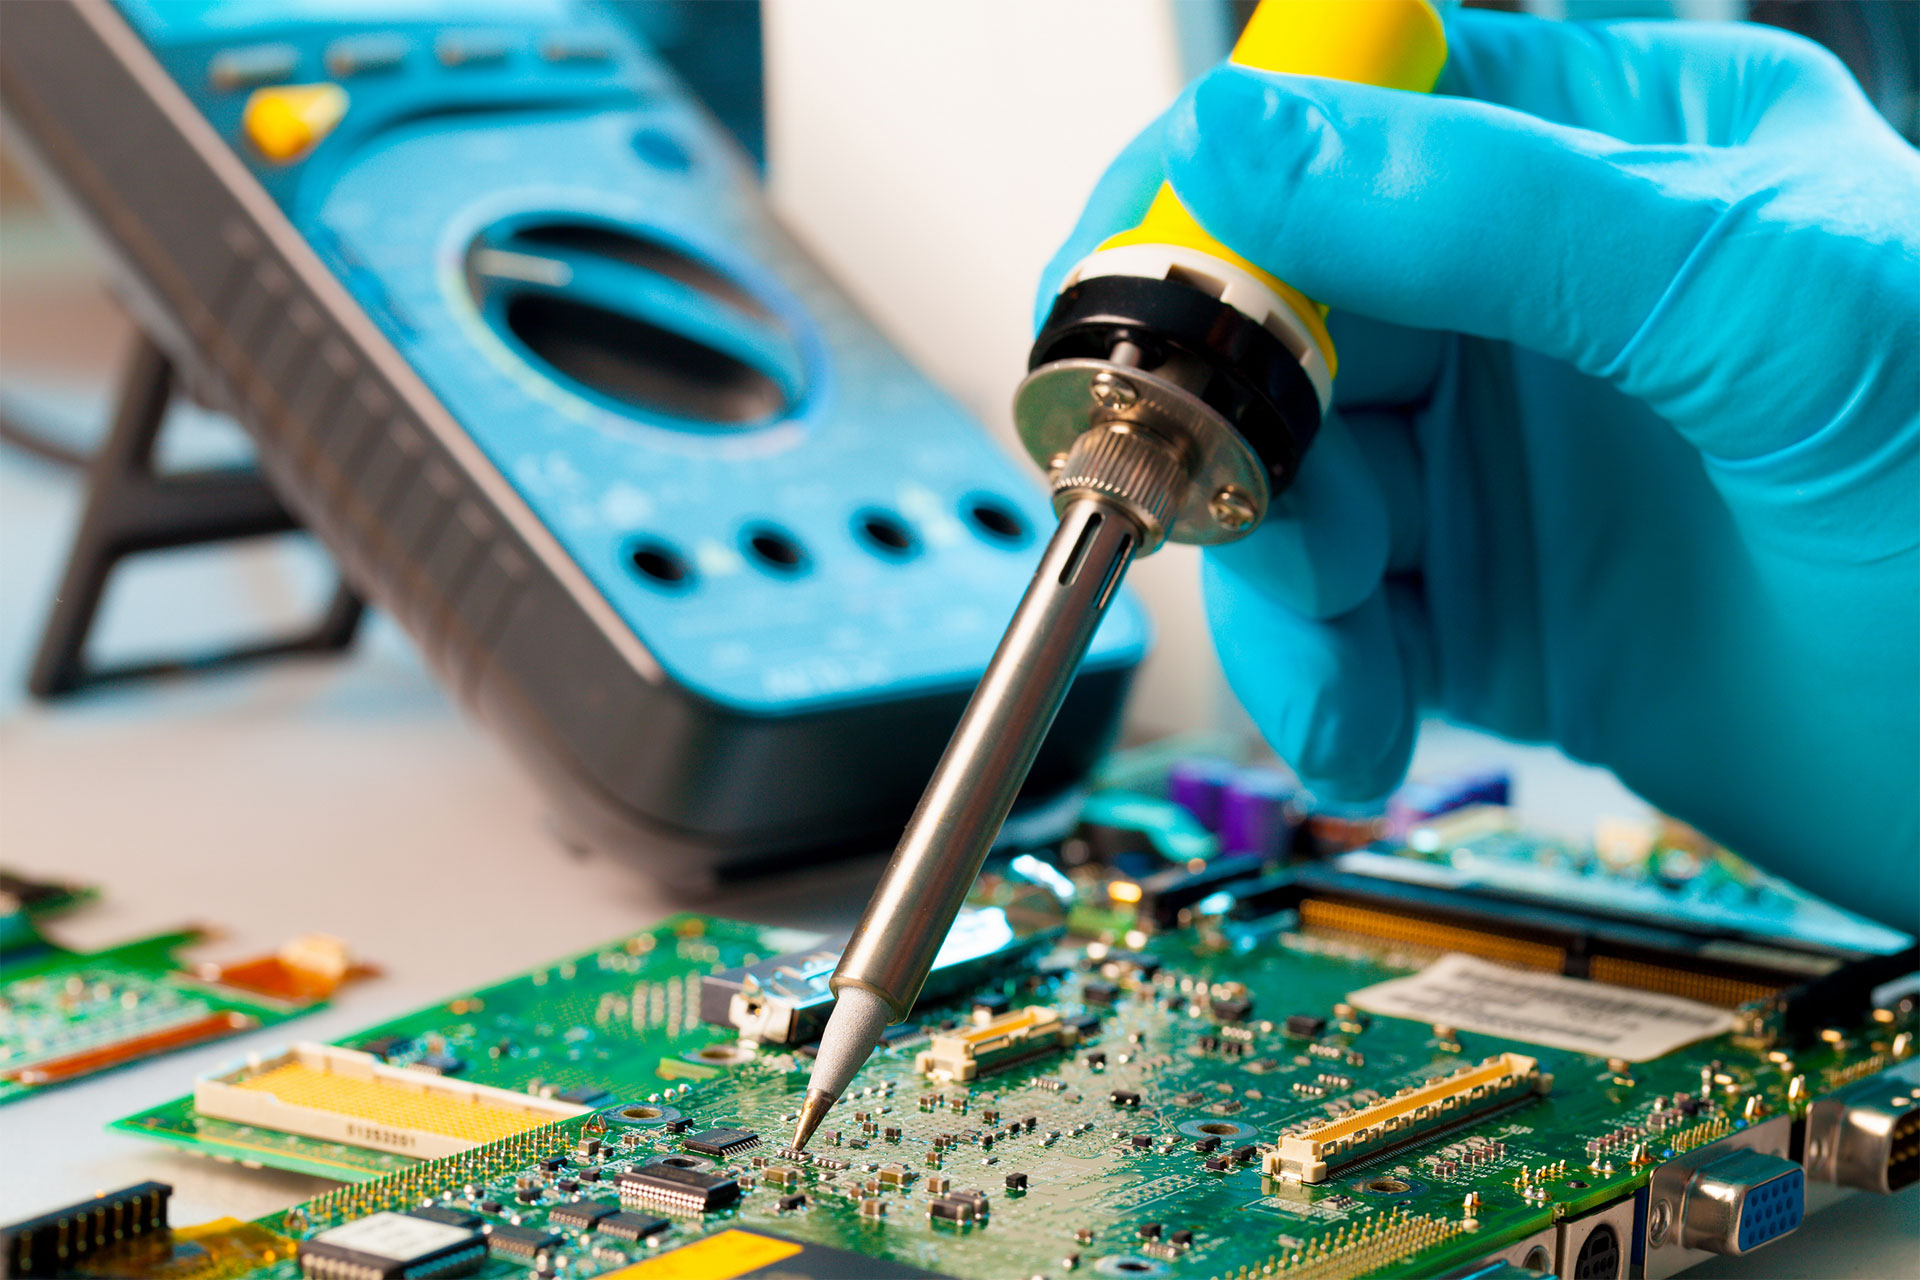 Electronic device and board repair